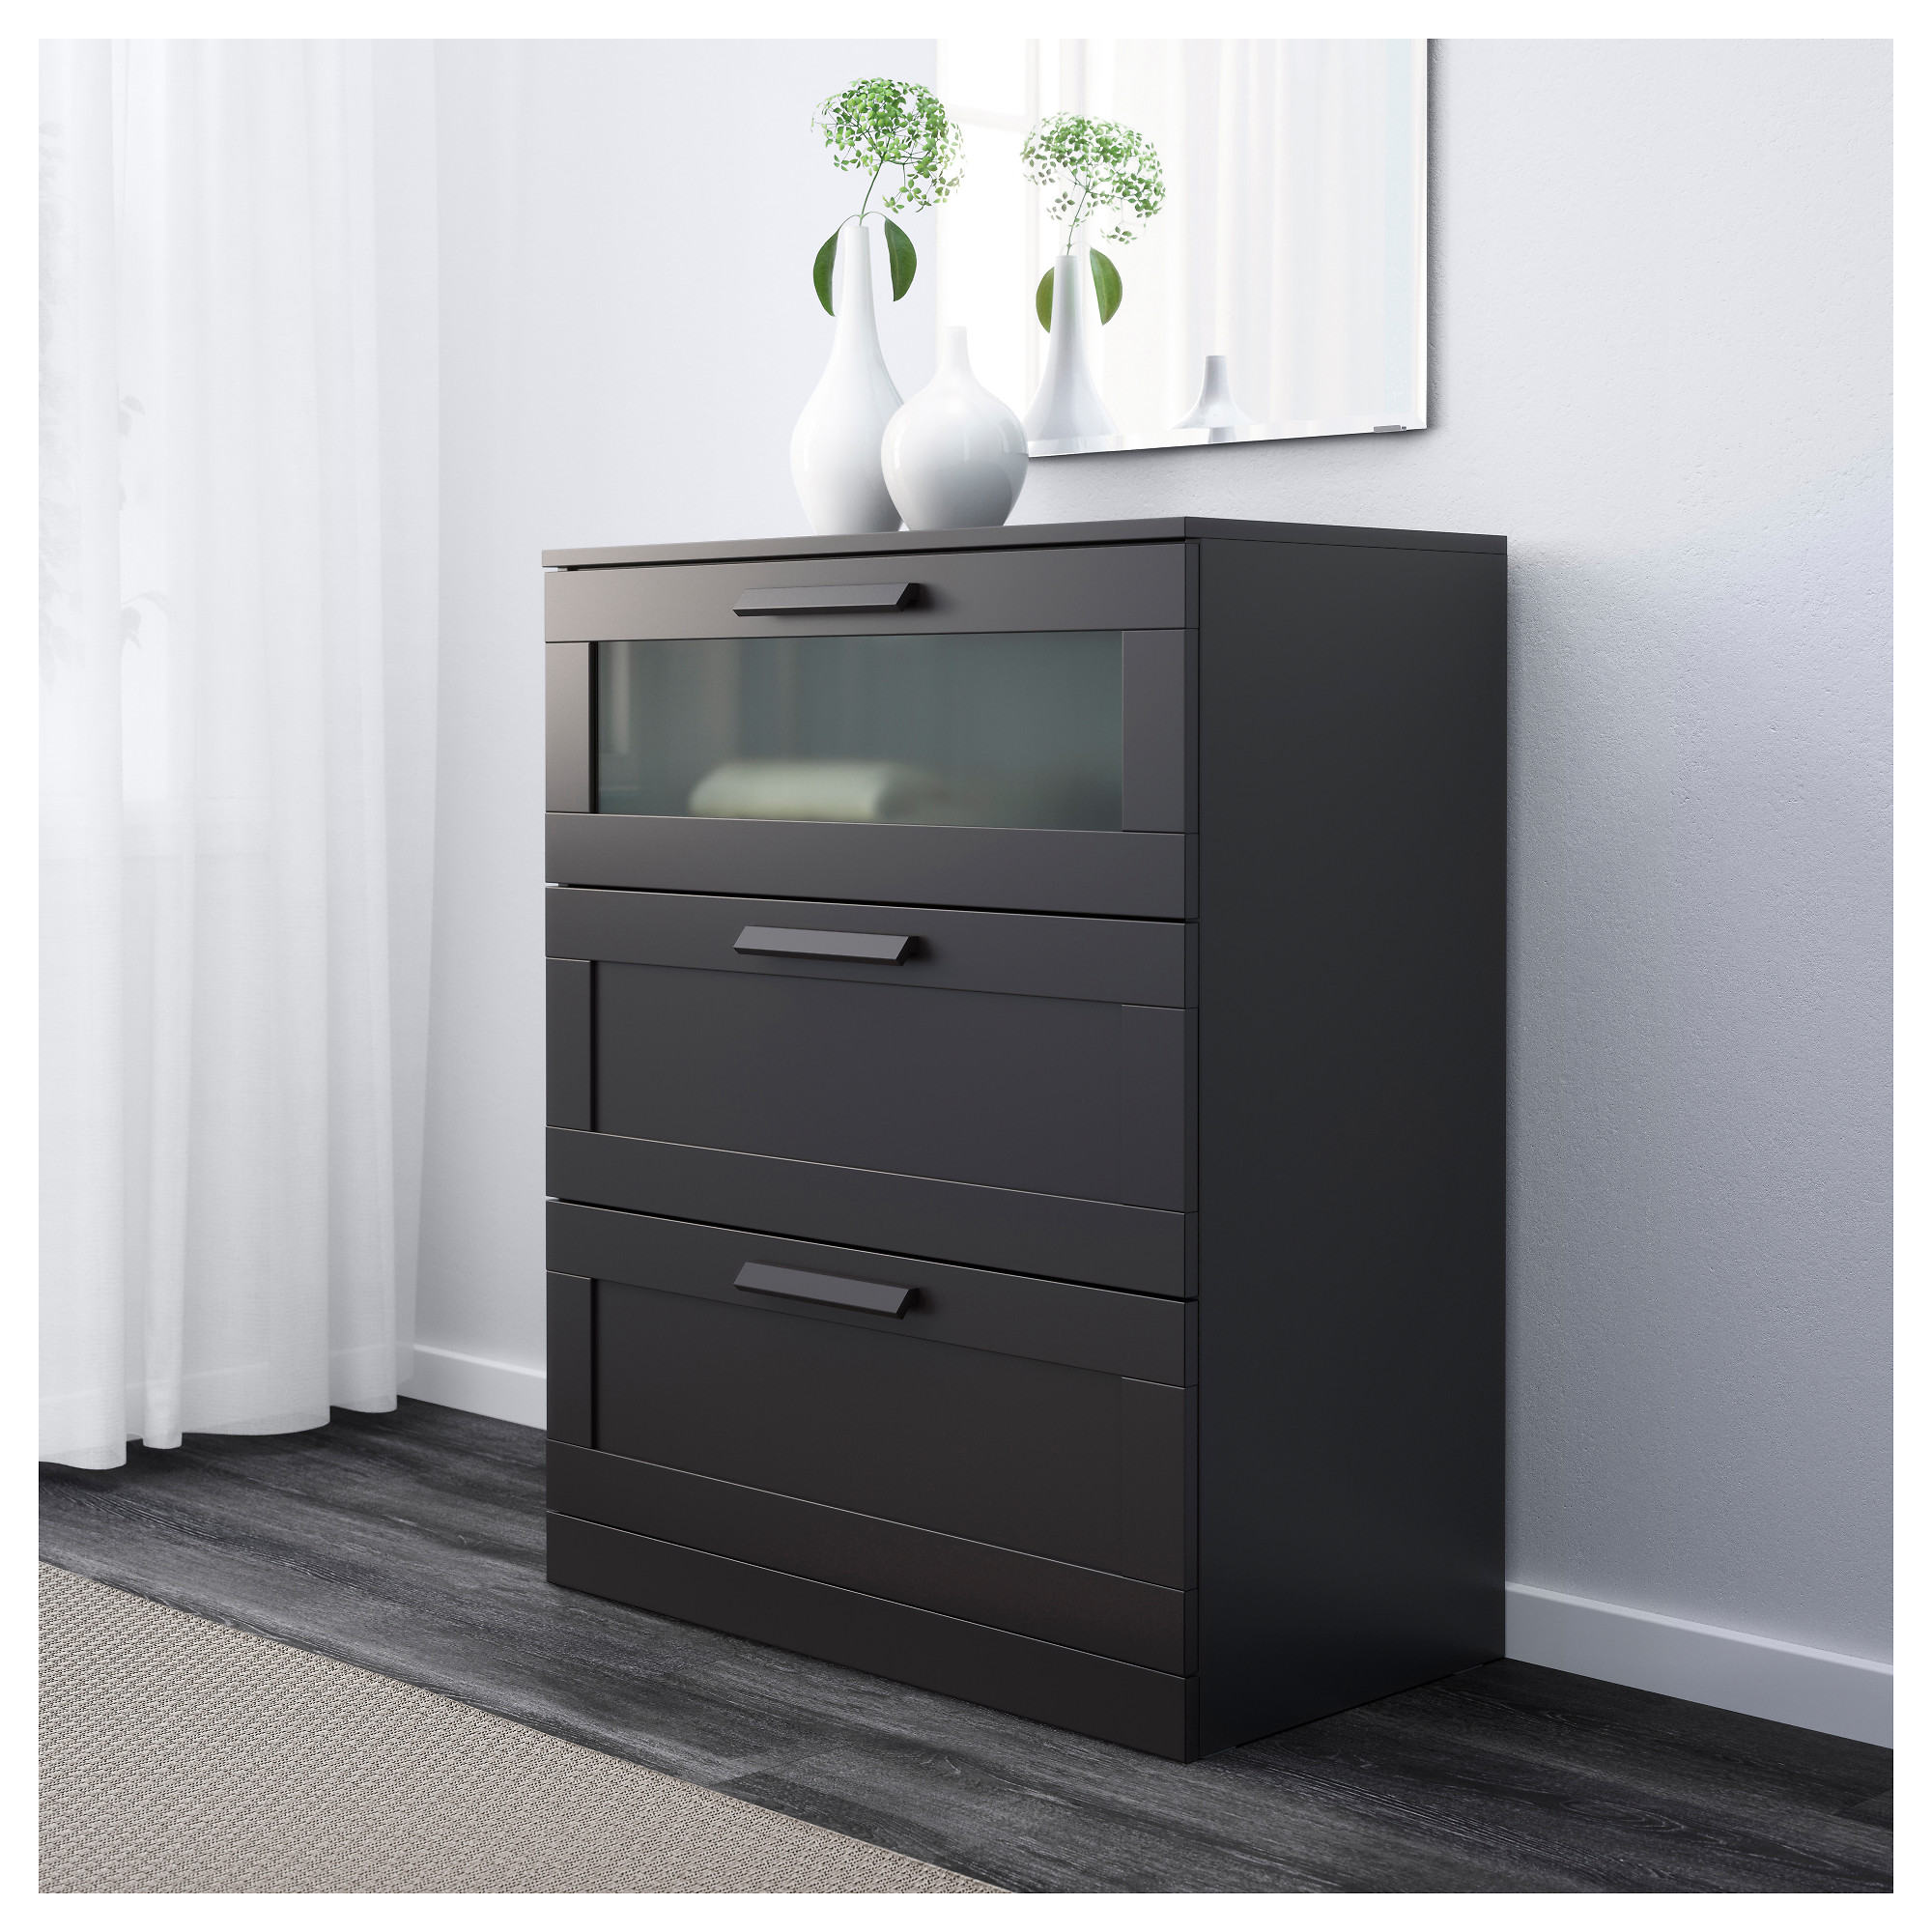 wood black of drawer drawers bedroom walmart ip com grain laguna chest